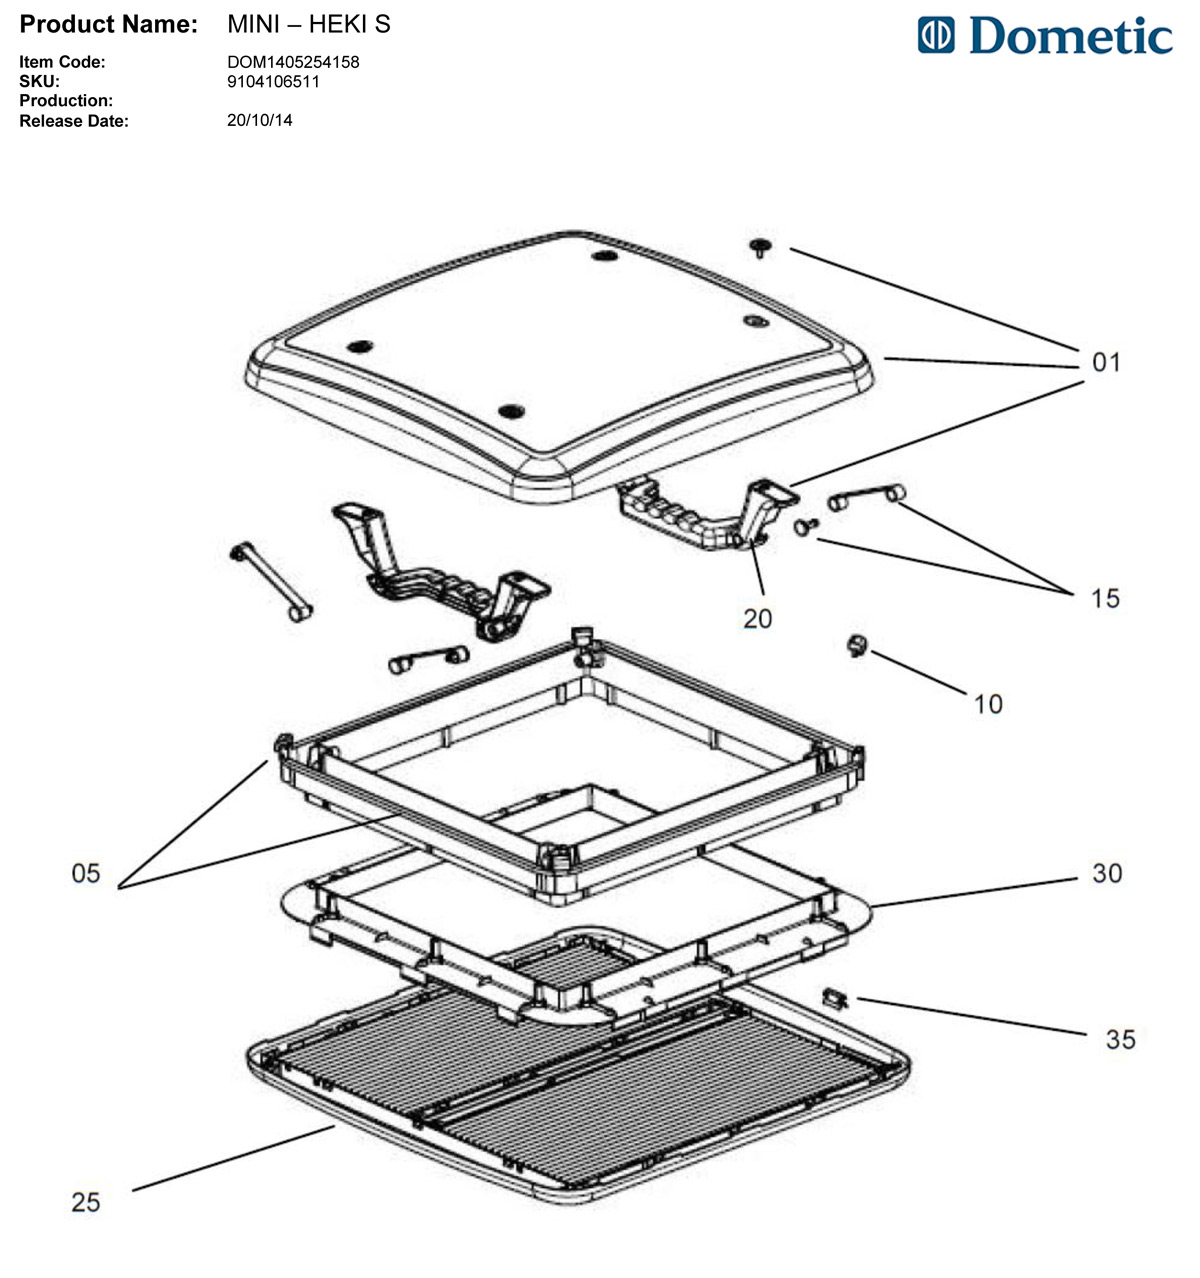 Spare Parts Diagram - Seitz Mini-Heiki S Roof Hatch